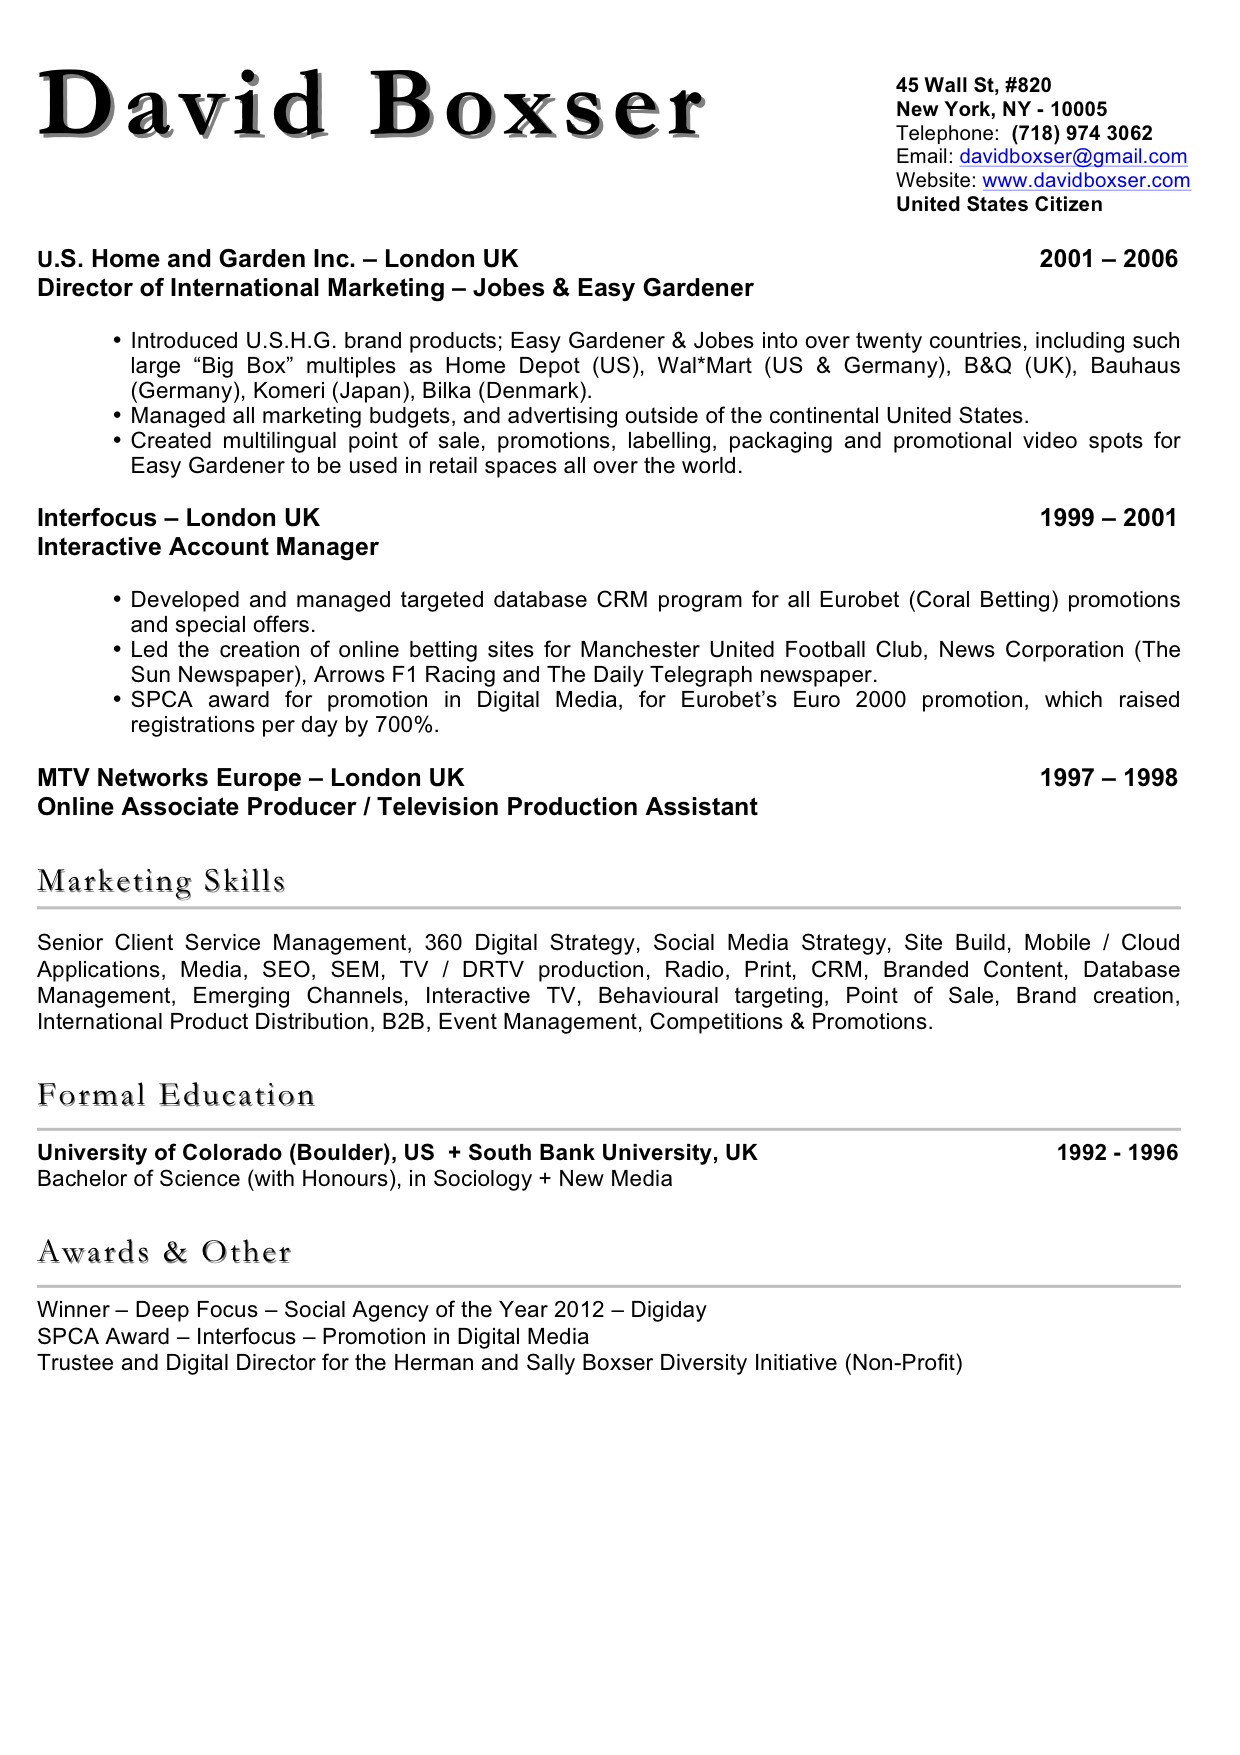 costco resume all file resume sample costco resume veterans costco david boxsers resume